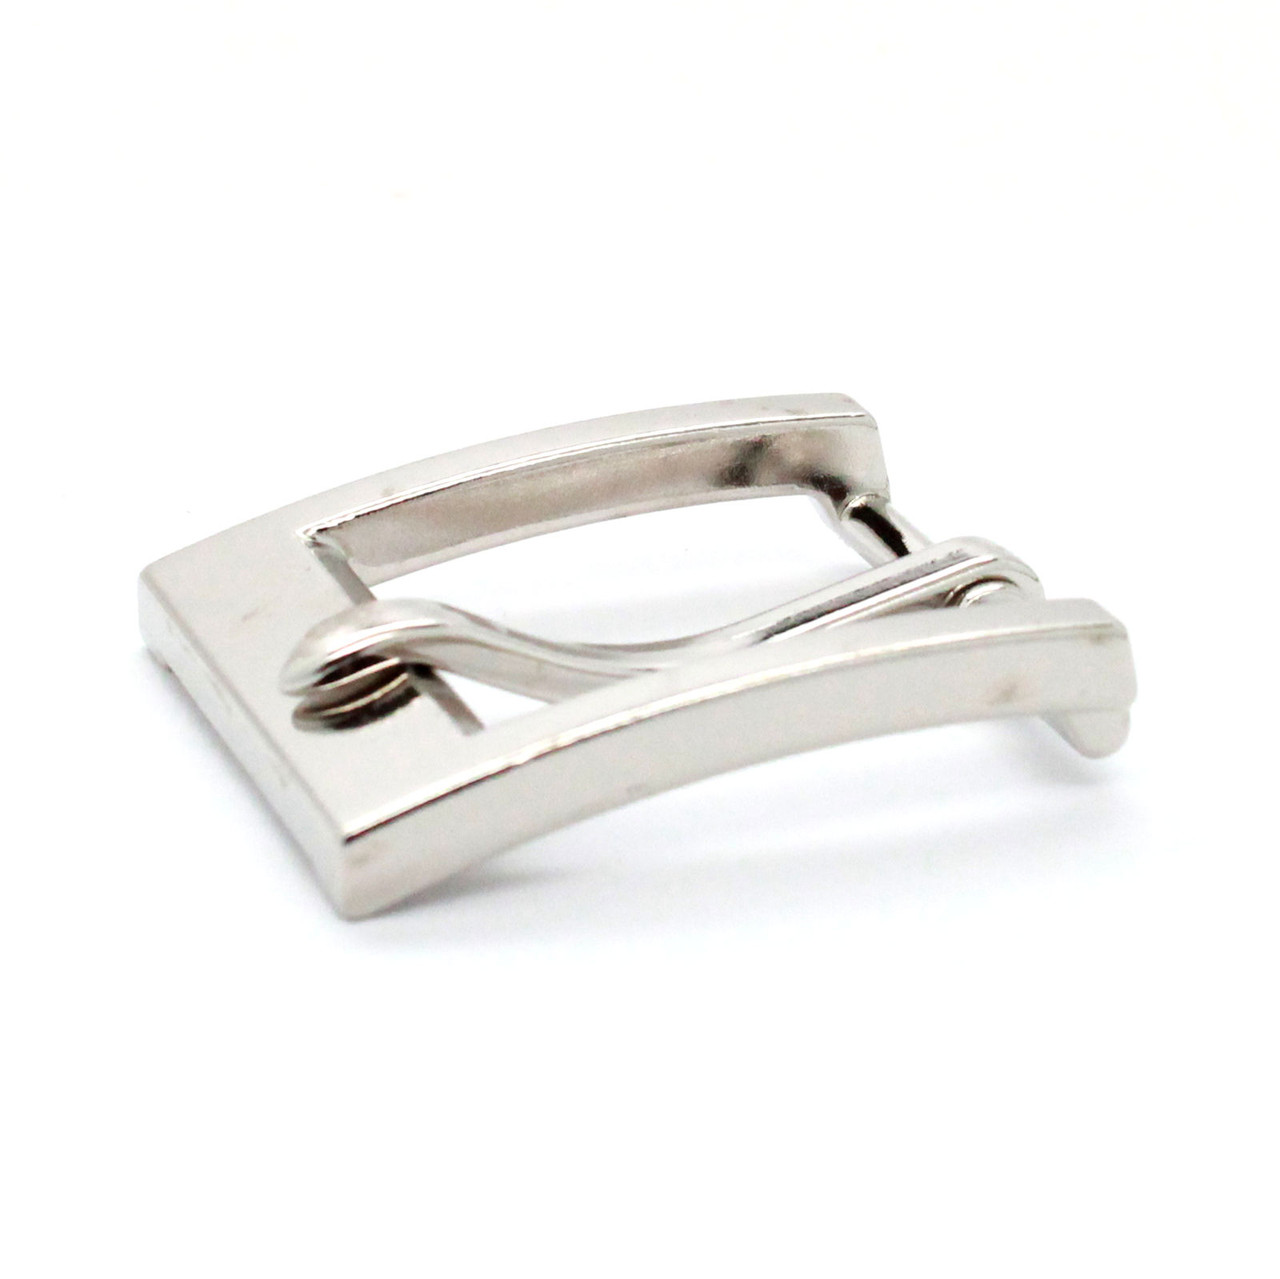 "Heel Bar Belt Buckle Nickel Plated 1-1/4"" Down"